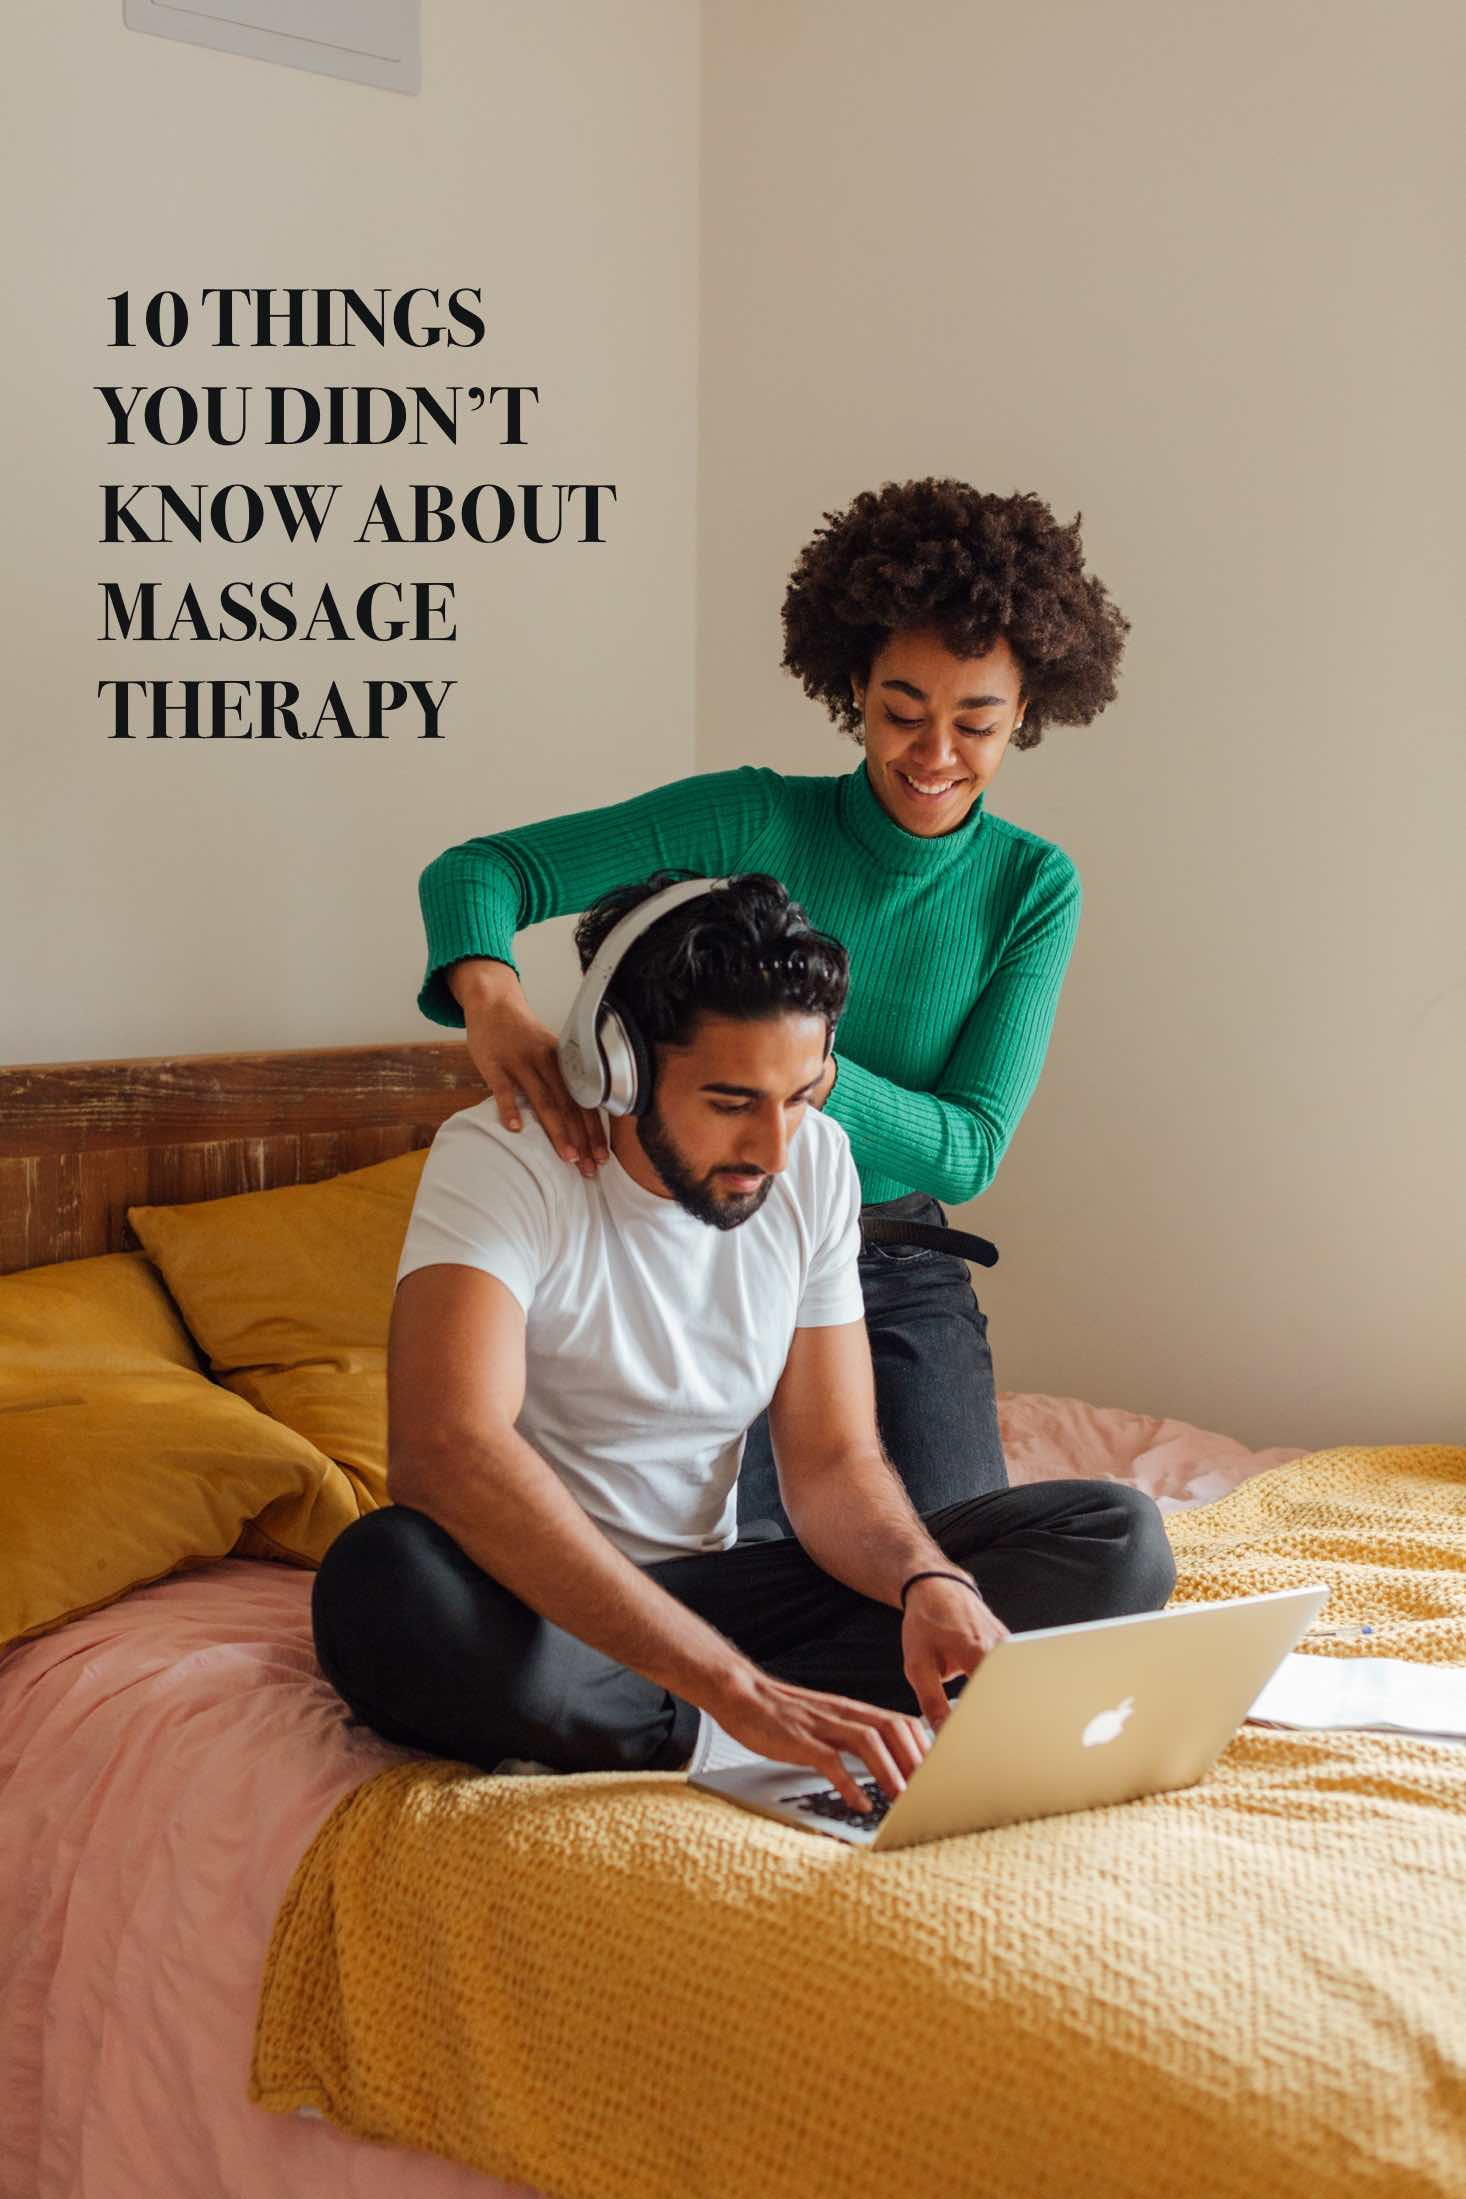 10 THINGS YOU DIDN'T KNOW ABOUT MASSAGE THERAPY